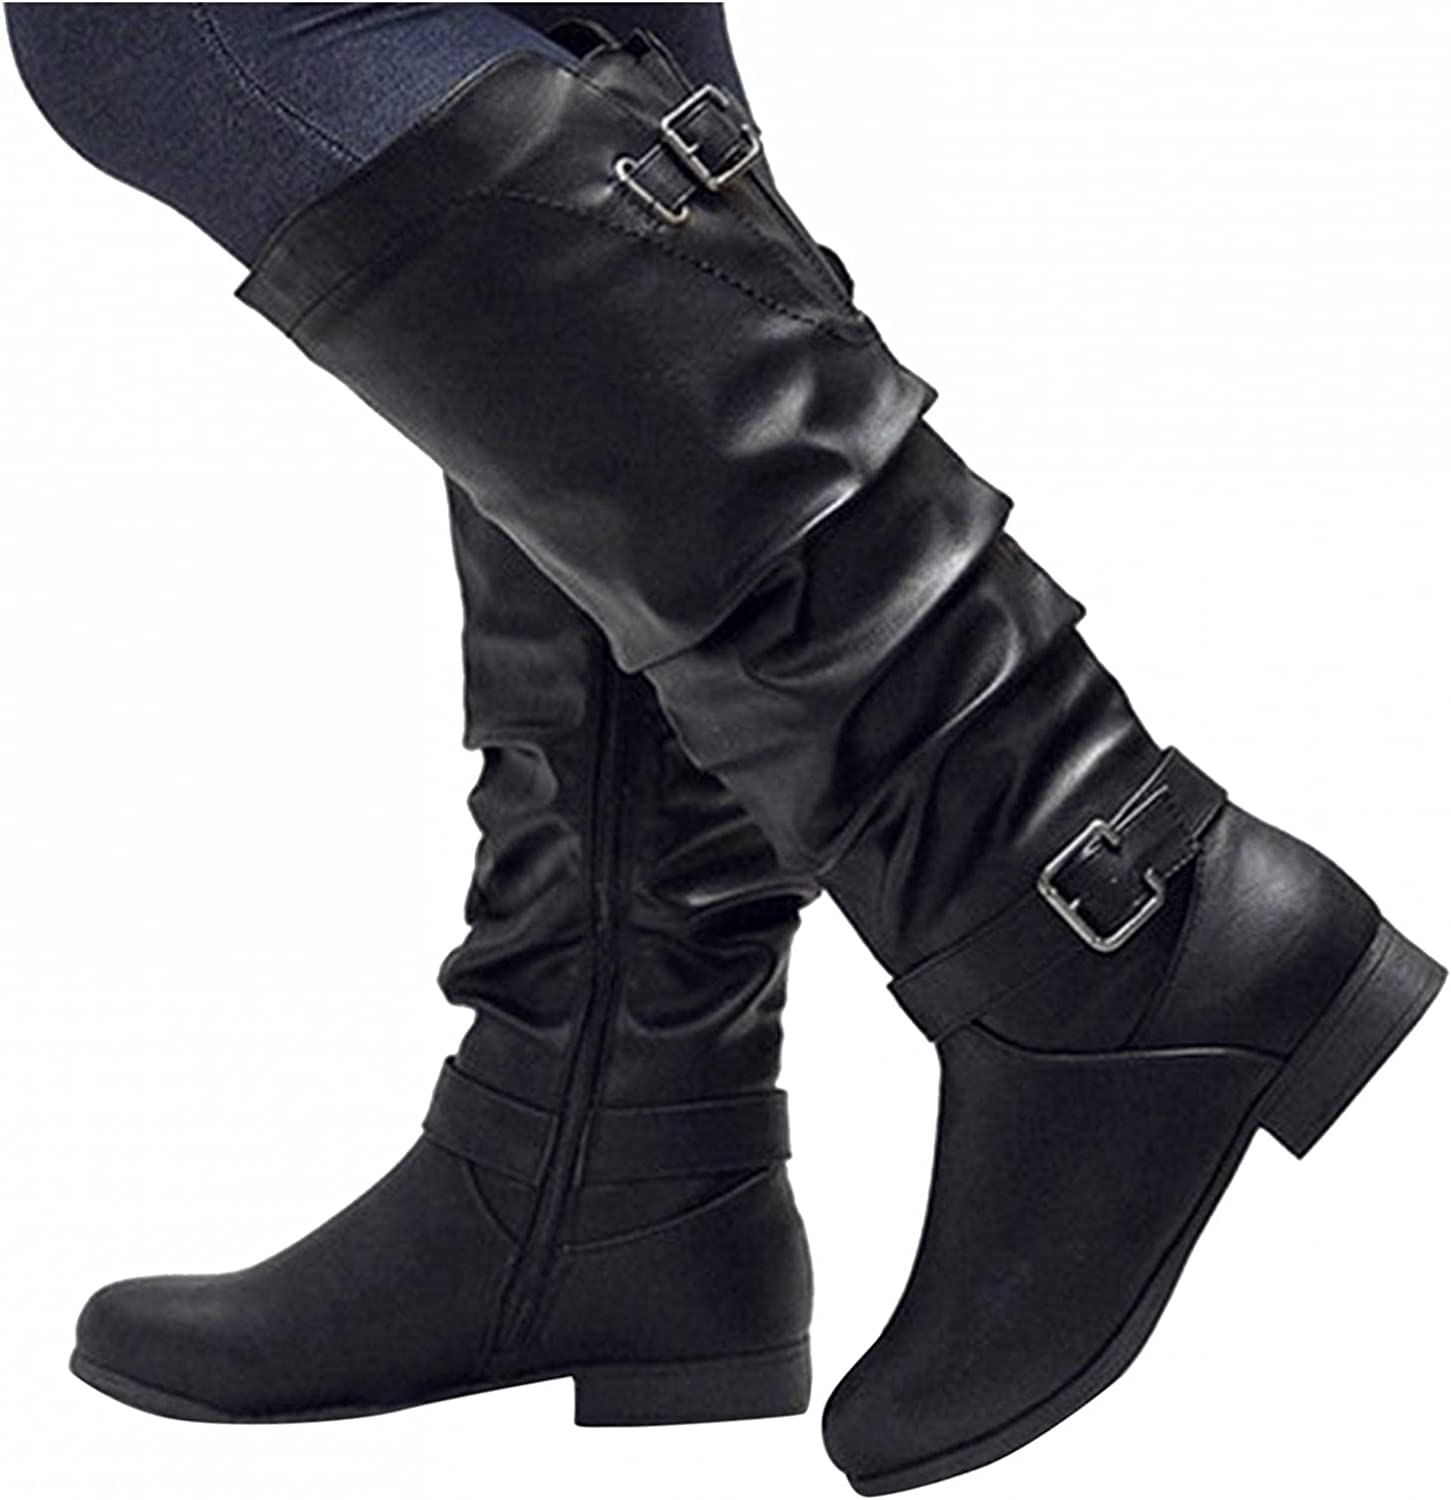 Gibobby Boots for Women Low Heel,Women's Fashion Casual Side Zipper Round Toe Mid Tube Booties Comfy Buckle Strap Platform Boots